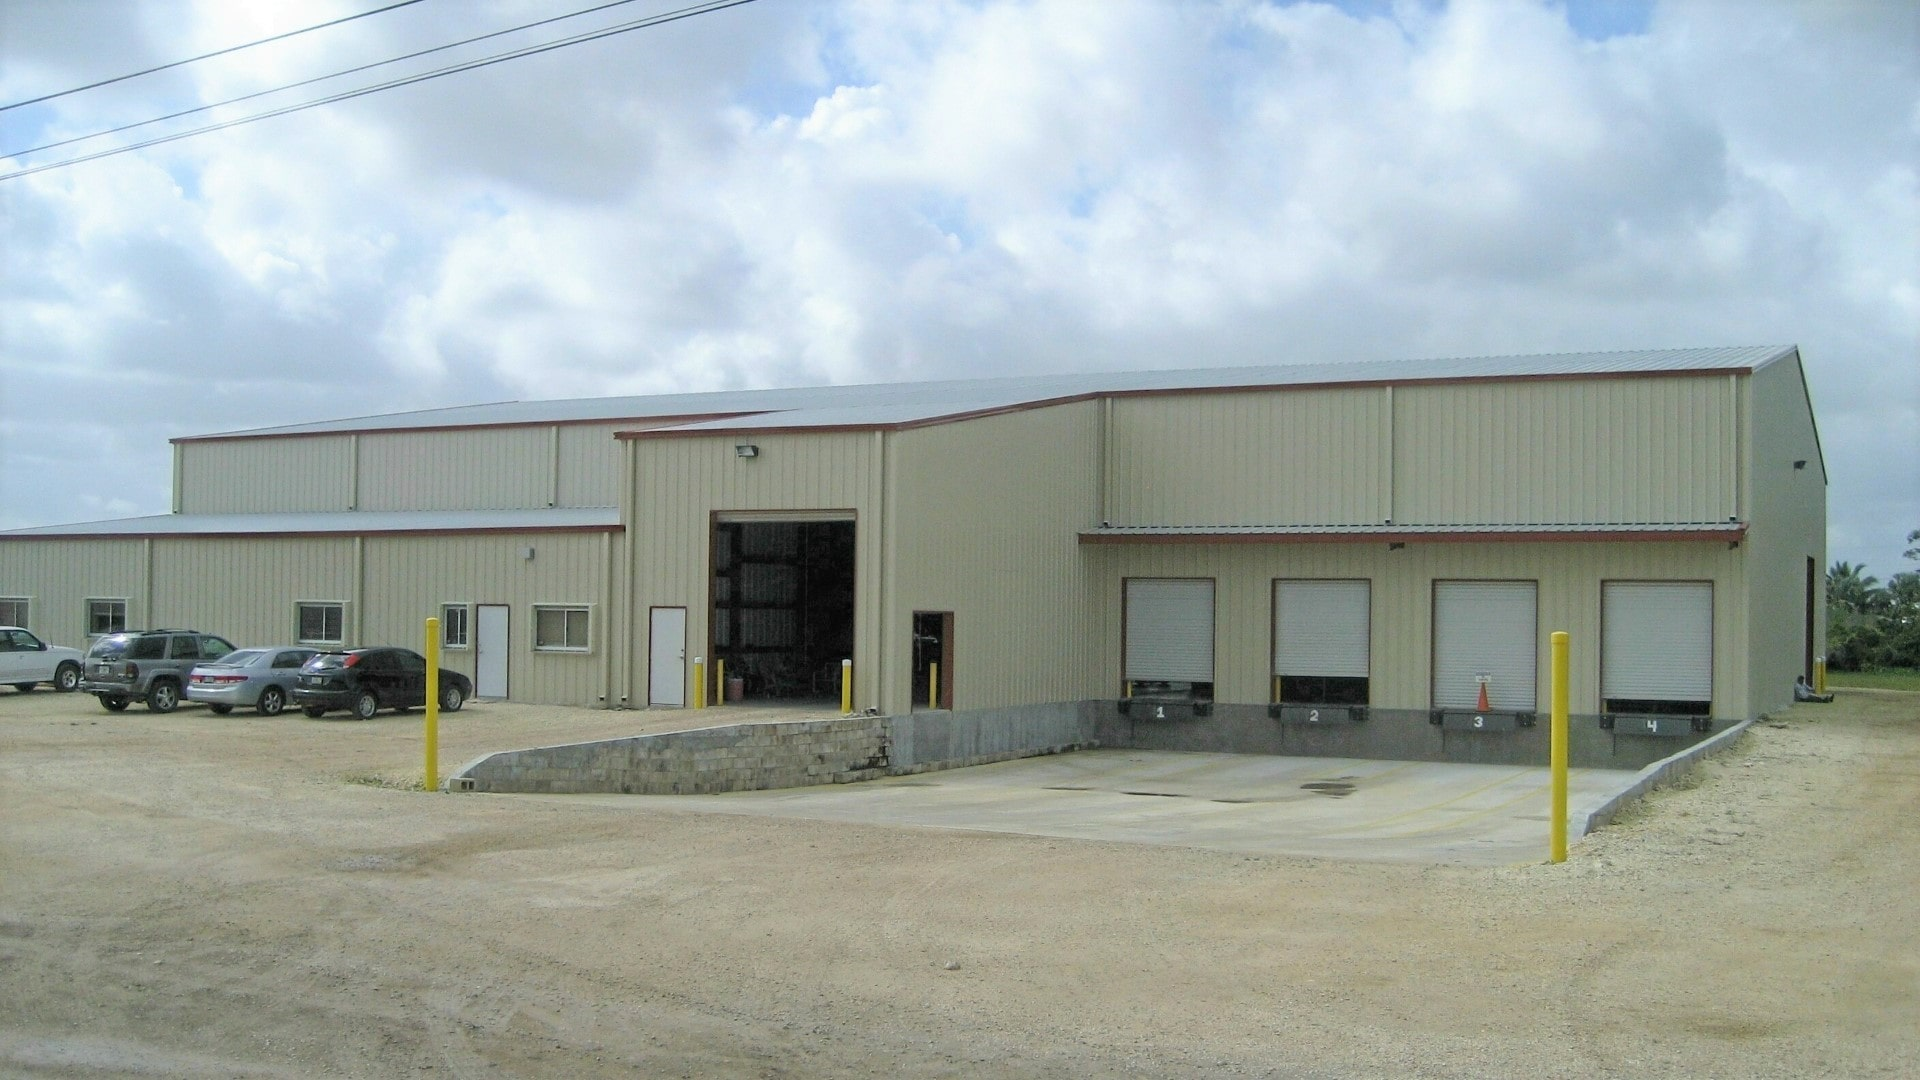 Commercial plant grower packing house tan steel building with loading dock view from front sidewall.